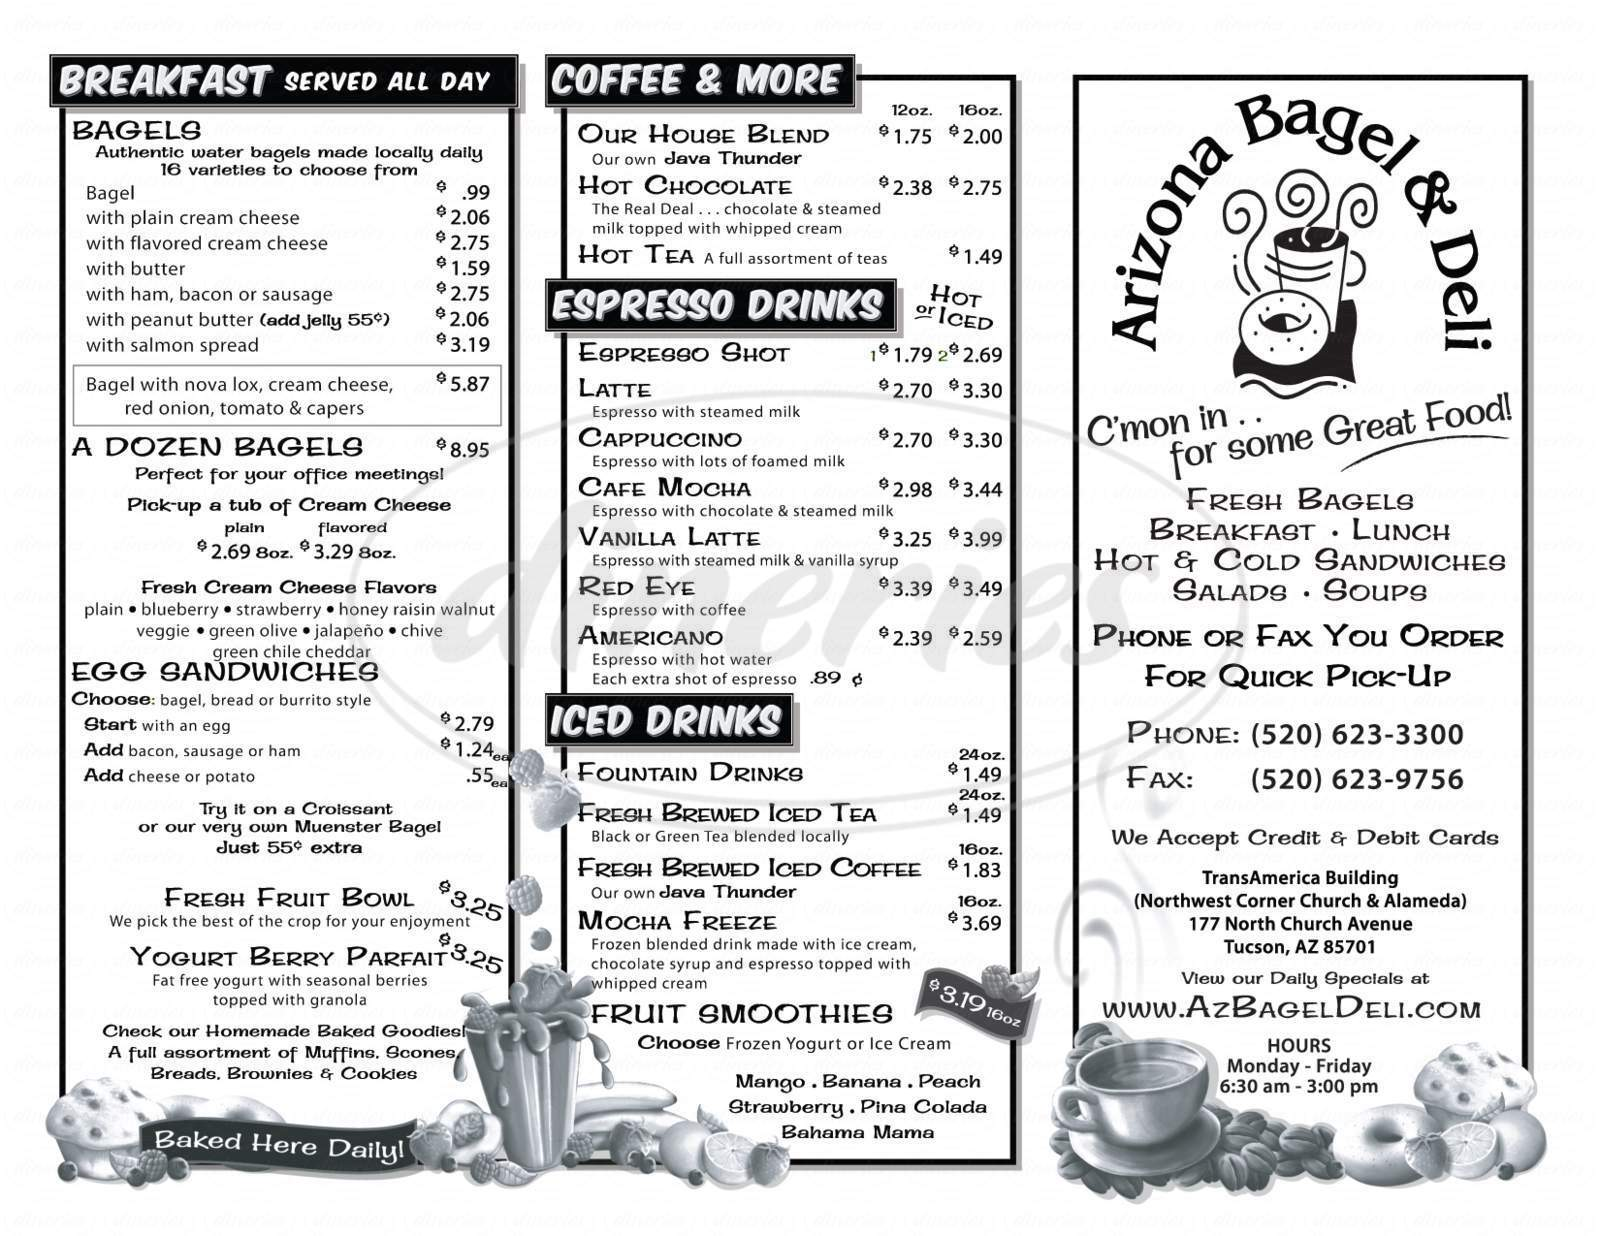 menu for Arizona Bagel & Deli